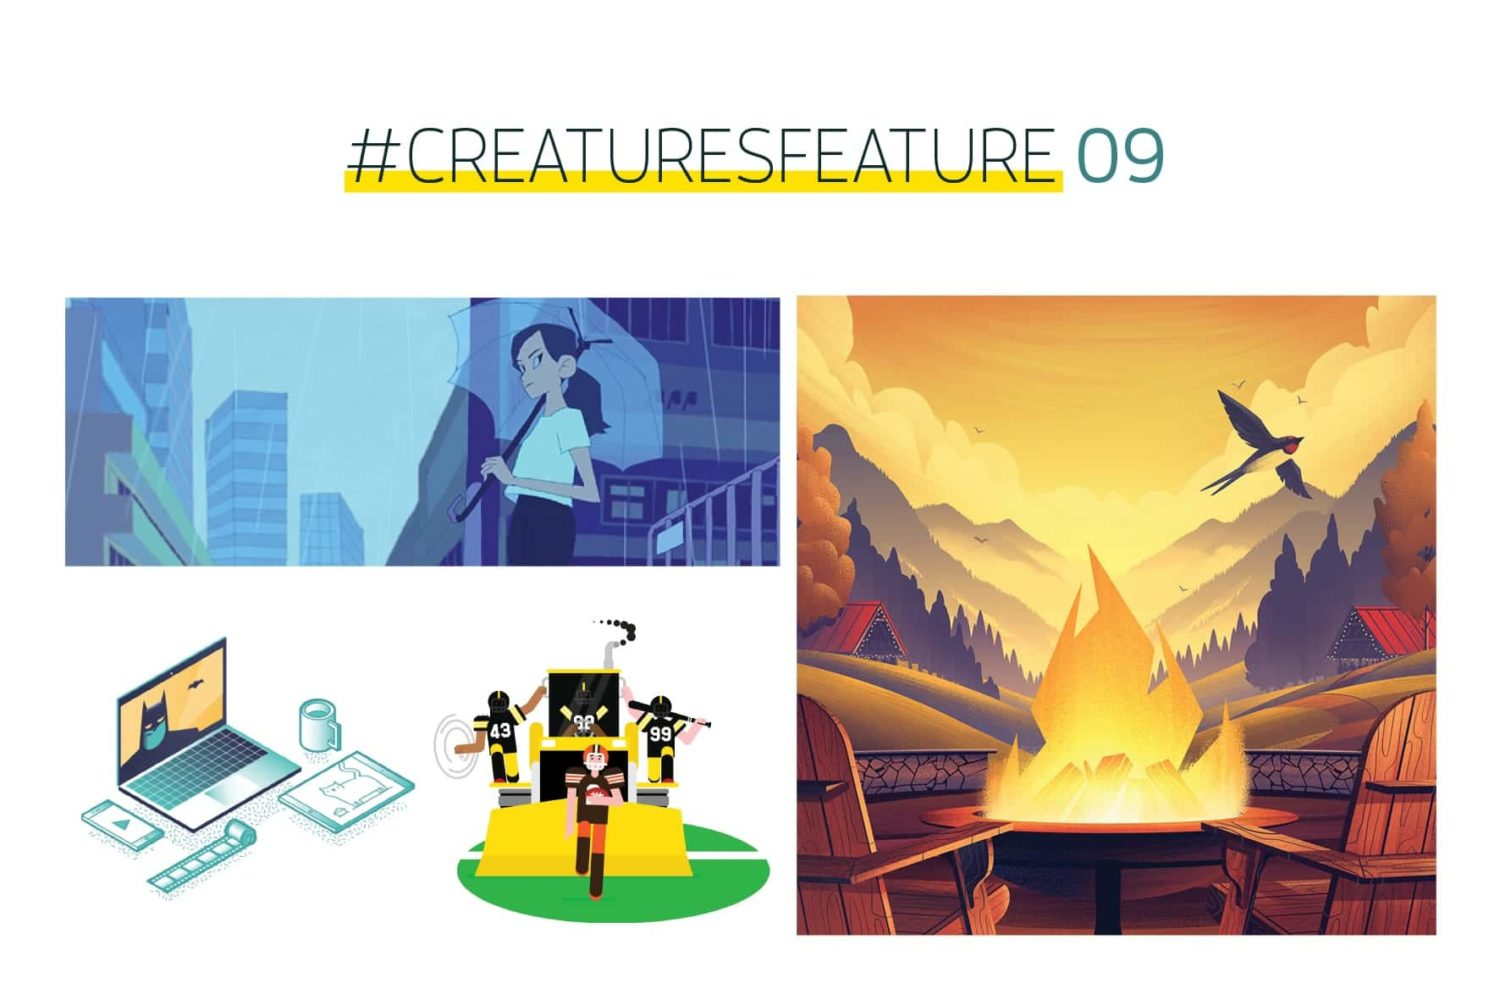 Creatures Feature 09